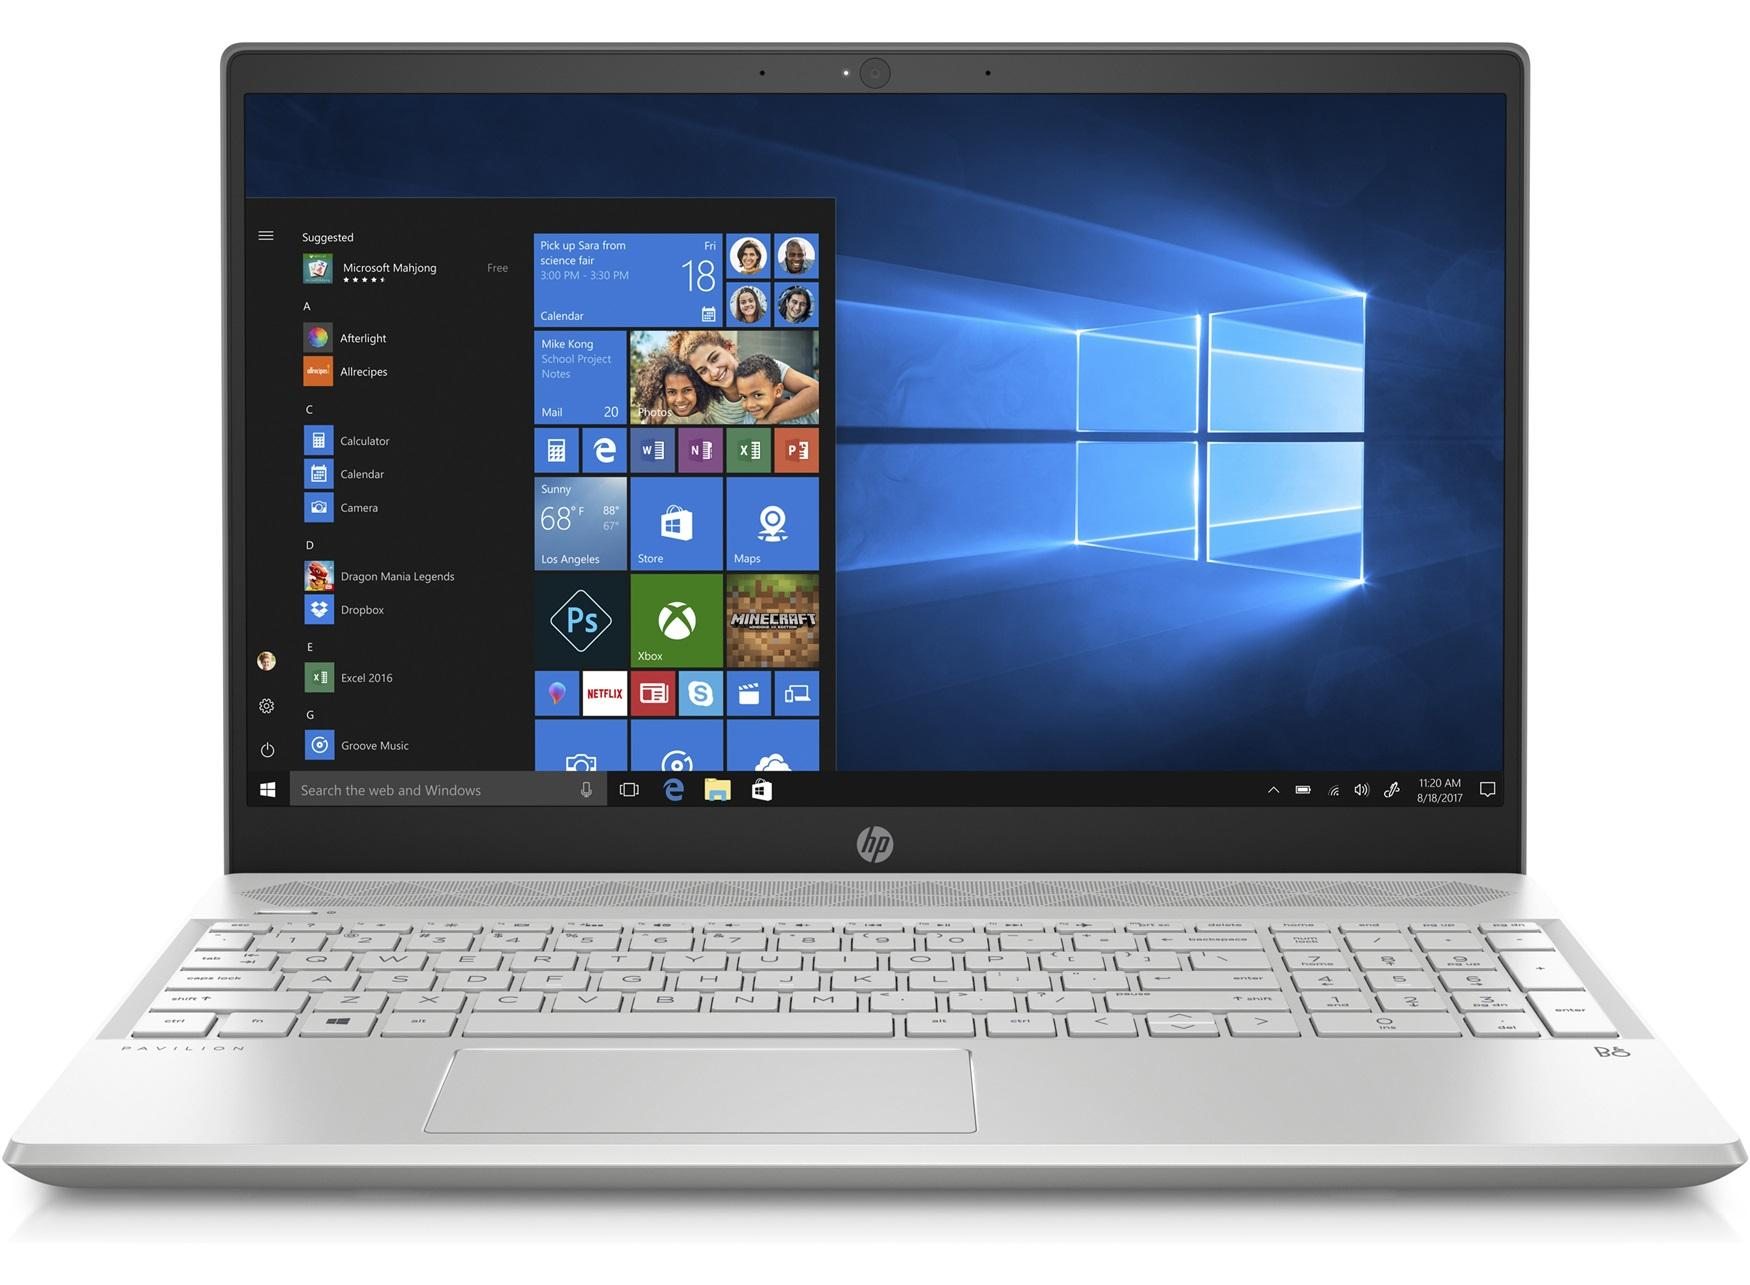 HP Pavilion 14-CE0065TX (8th Gen Intel i7-8550U Processor, 16GB RAM, NVIDIA GeForce MX150 2GB GDDR5, 512GB SSD)